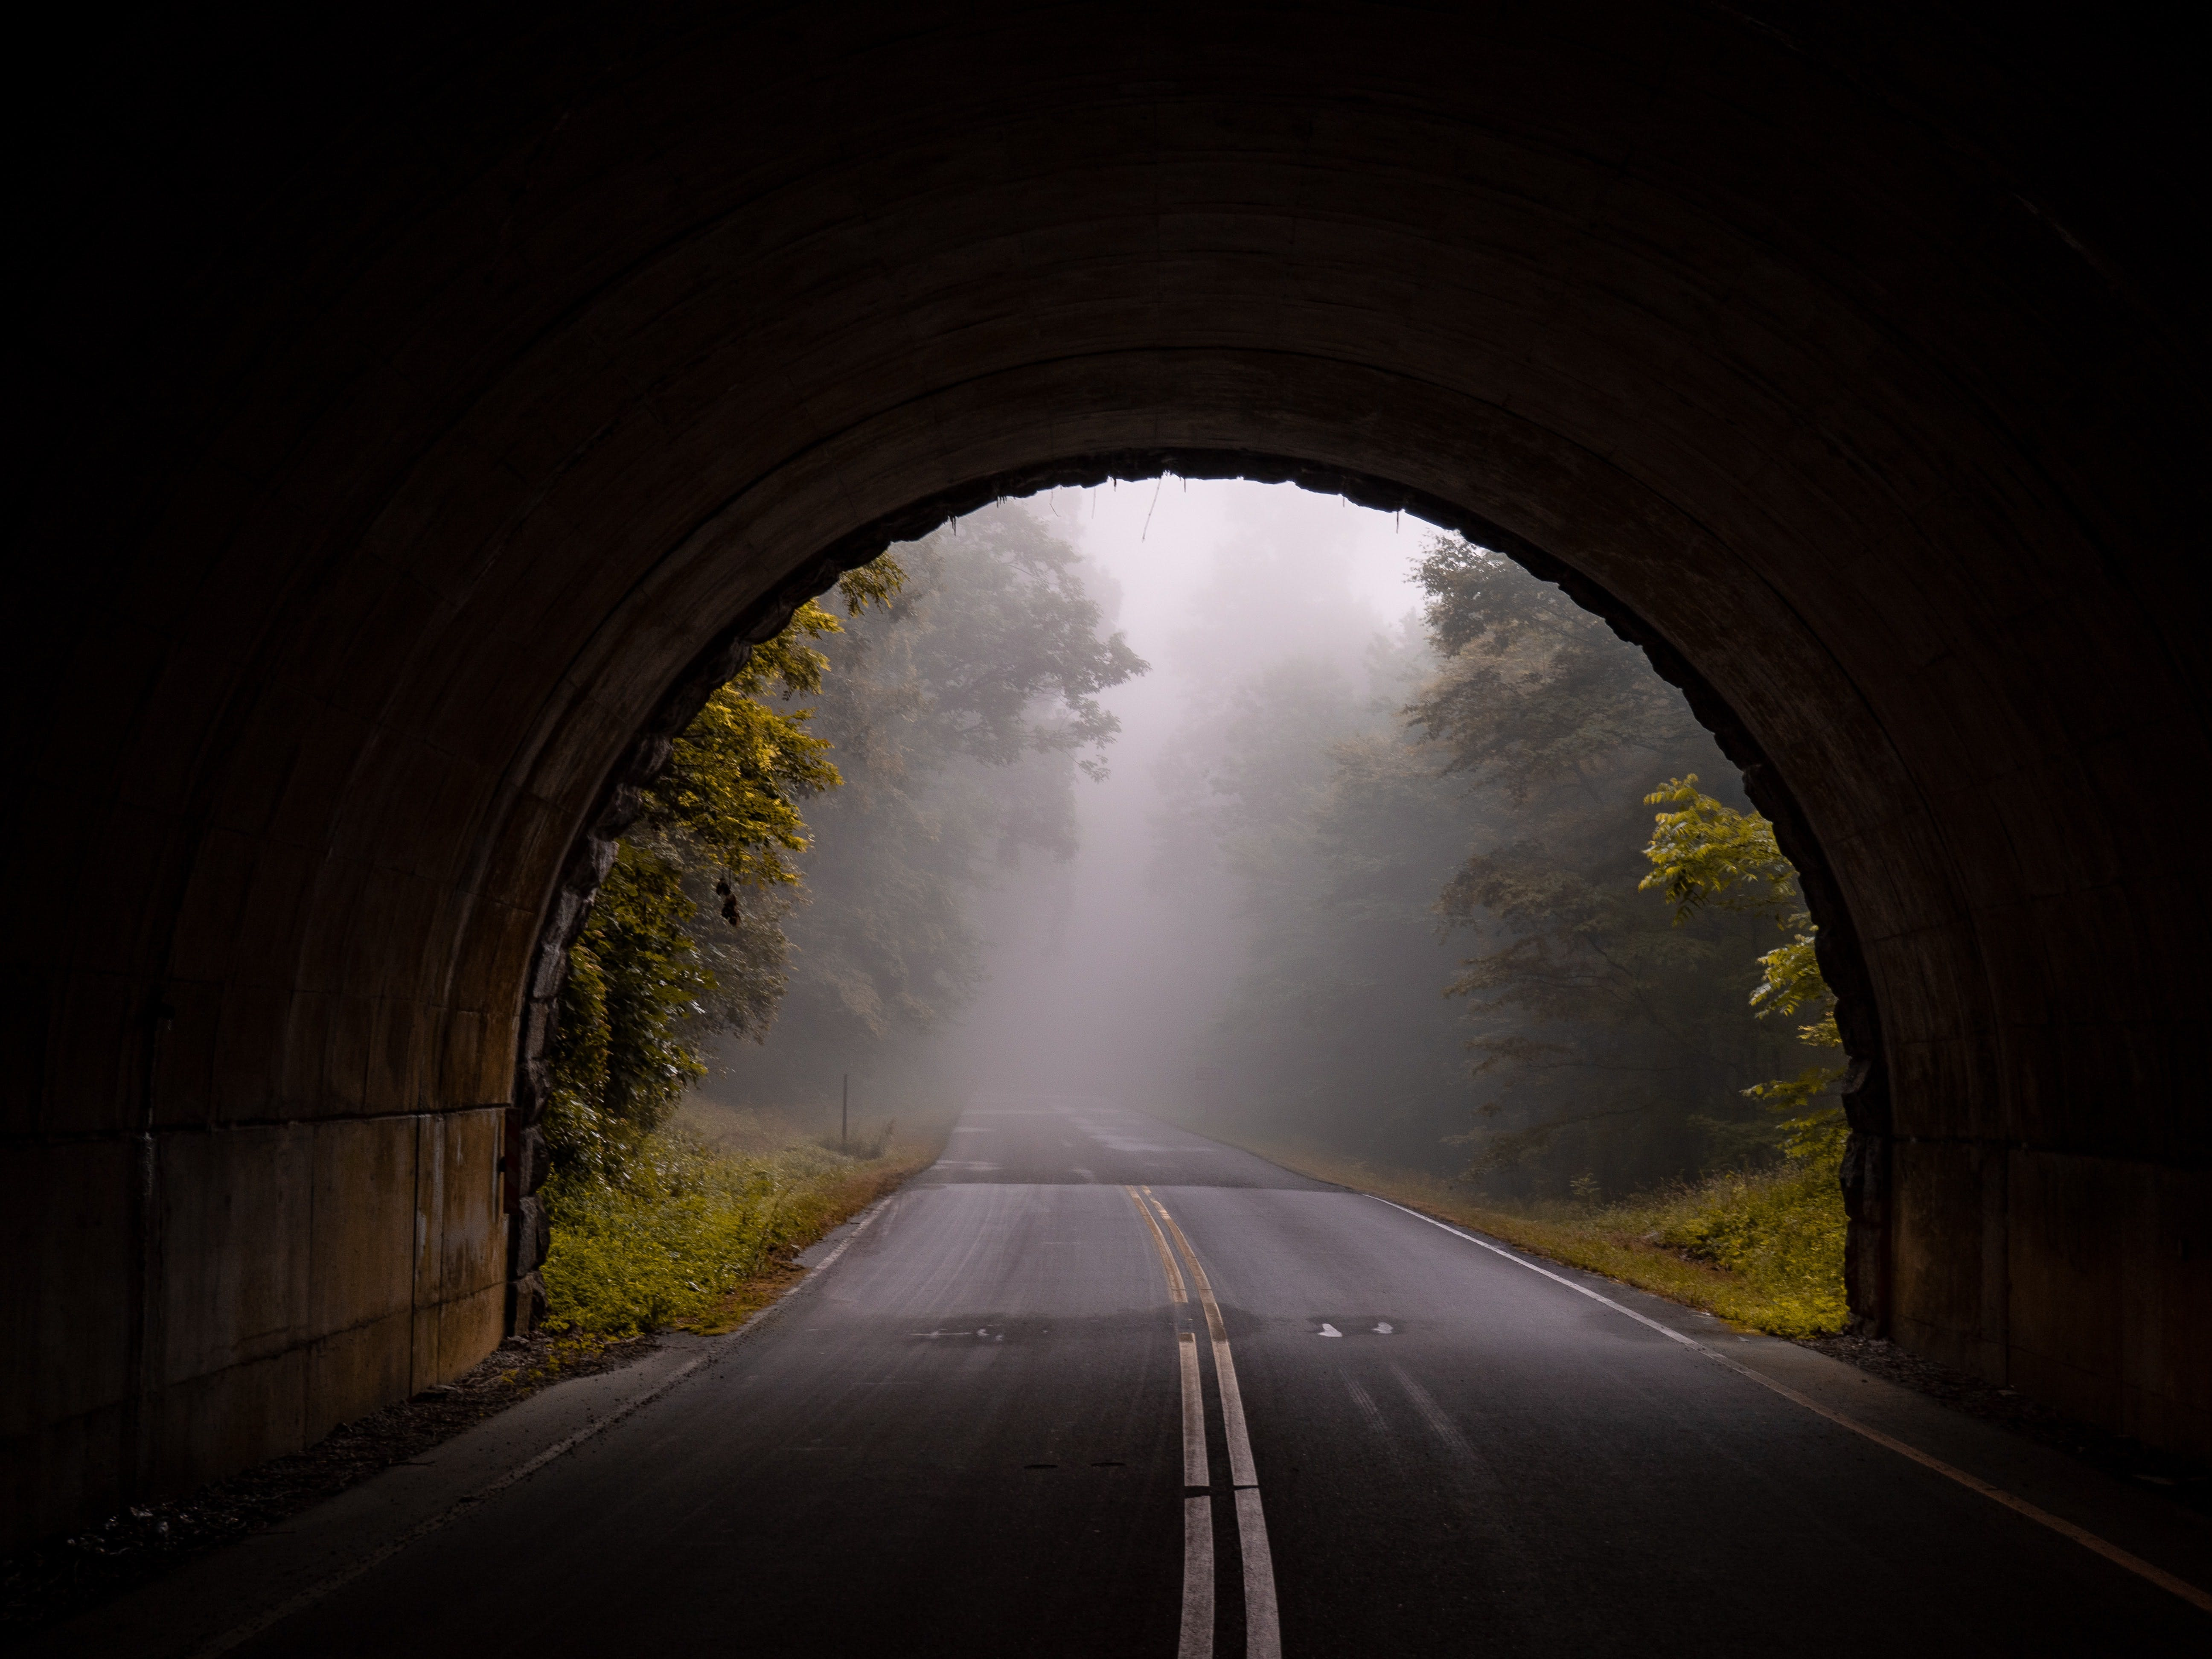 road and haze, as a concept of innovative thinking and innovation as a daily practice